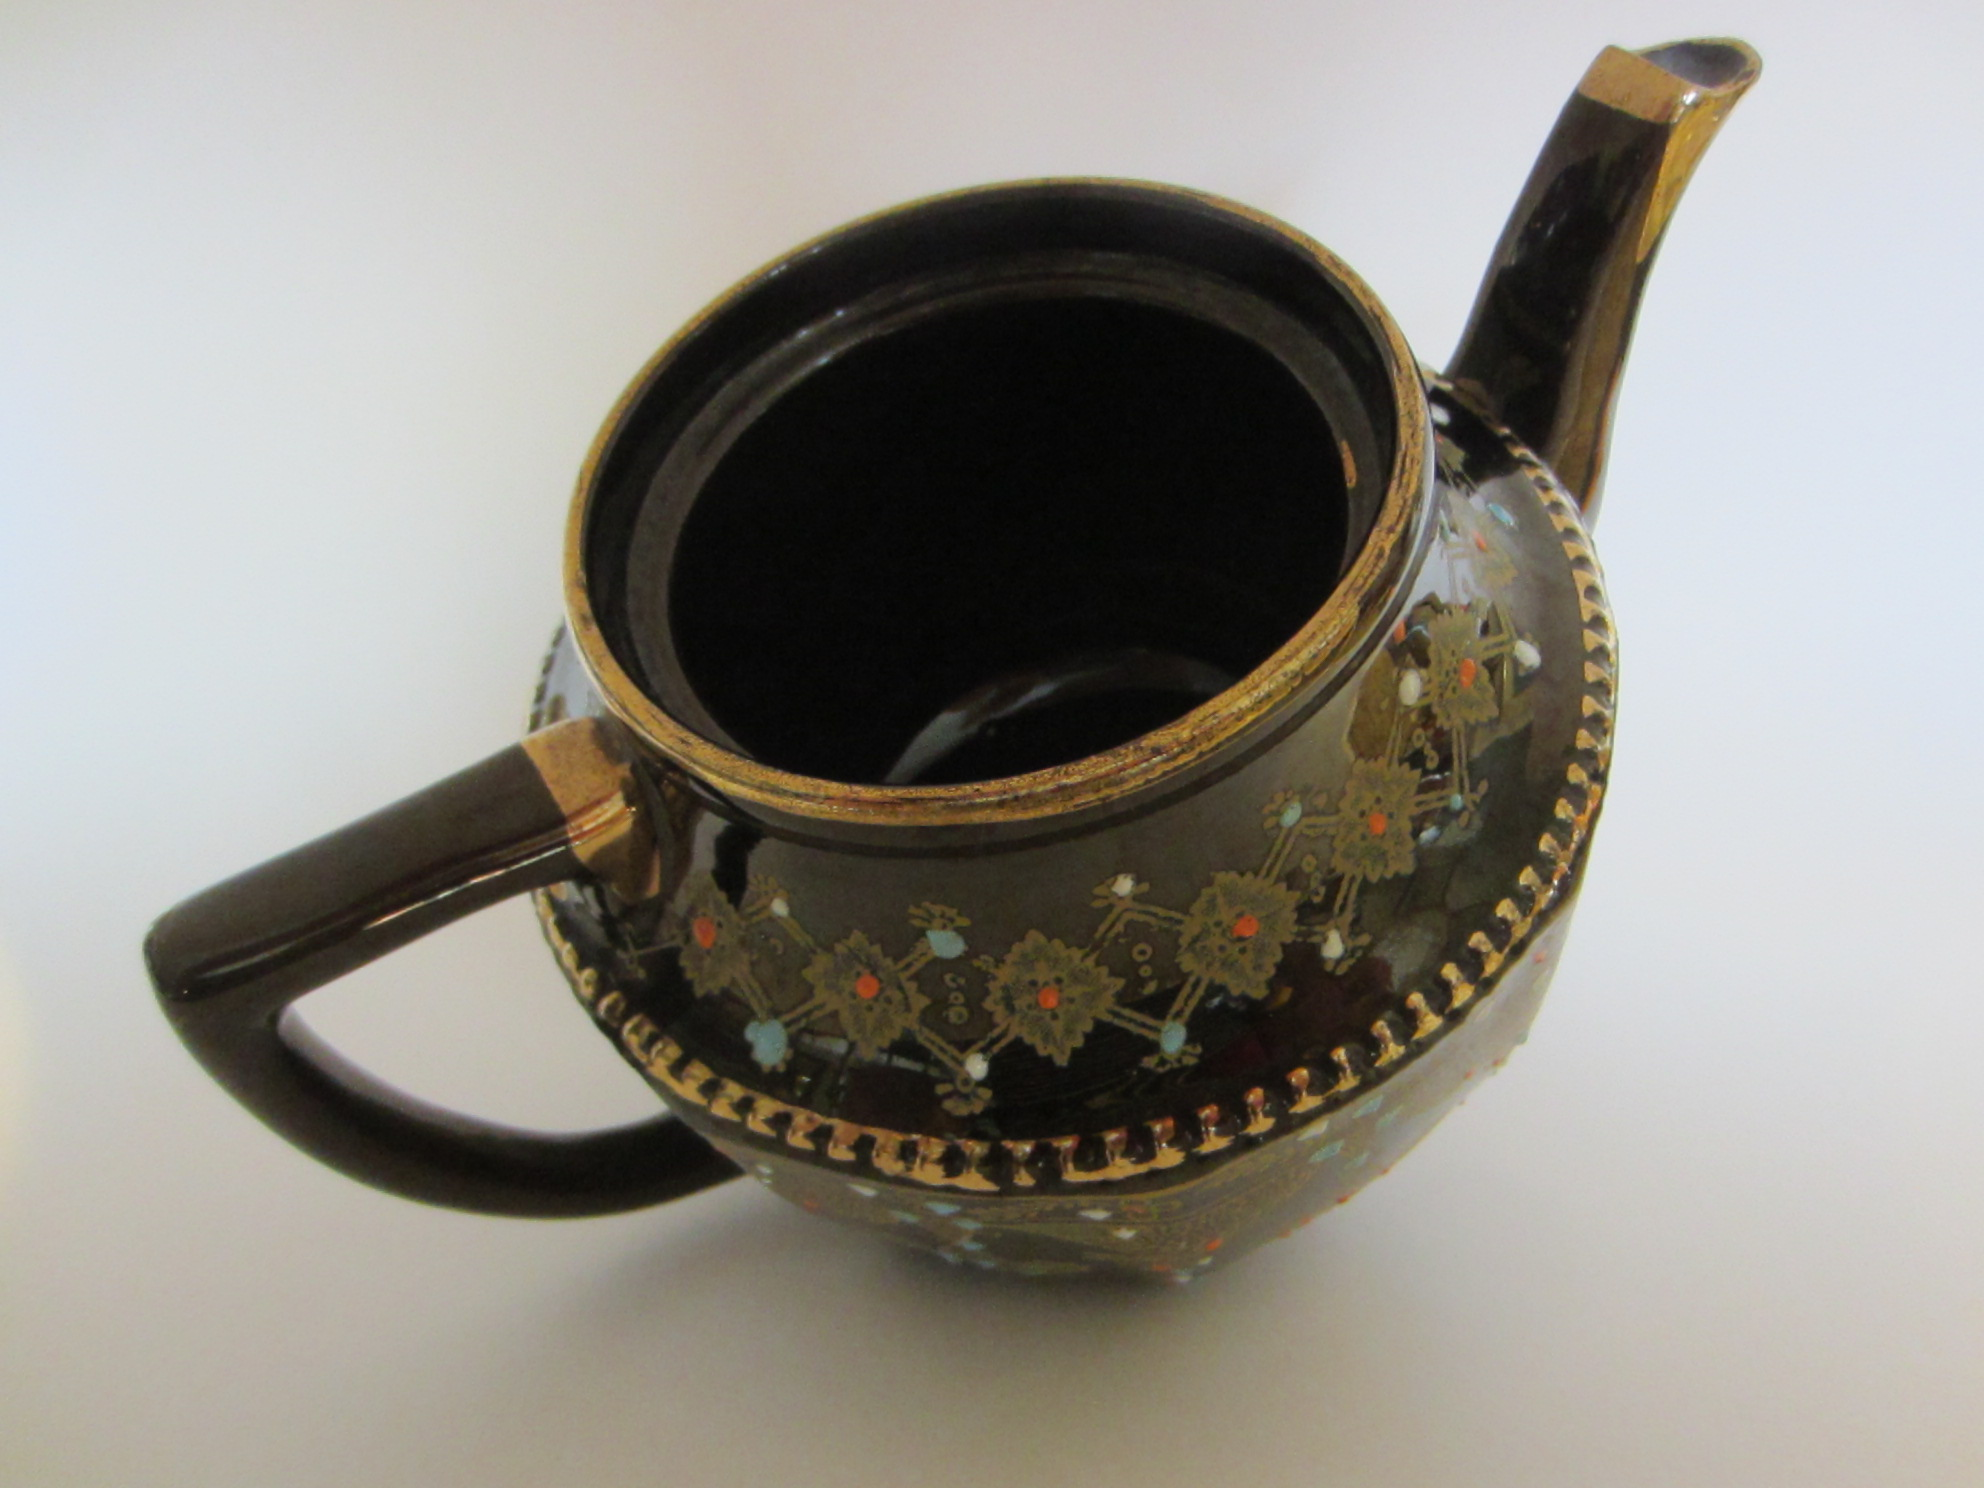 Luster Brown Ceramic Teapot Only For Decor With Idea Of Dried U0026 Or Fresh  Flowers And Leaves. Very Likely Made In Japan (occupied Timing) The Lid Is  No ...